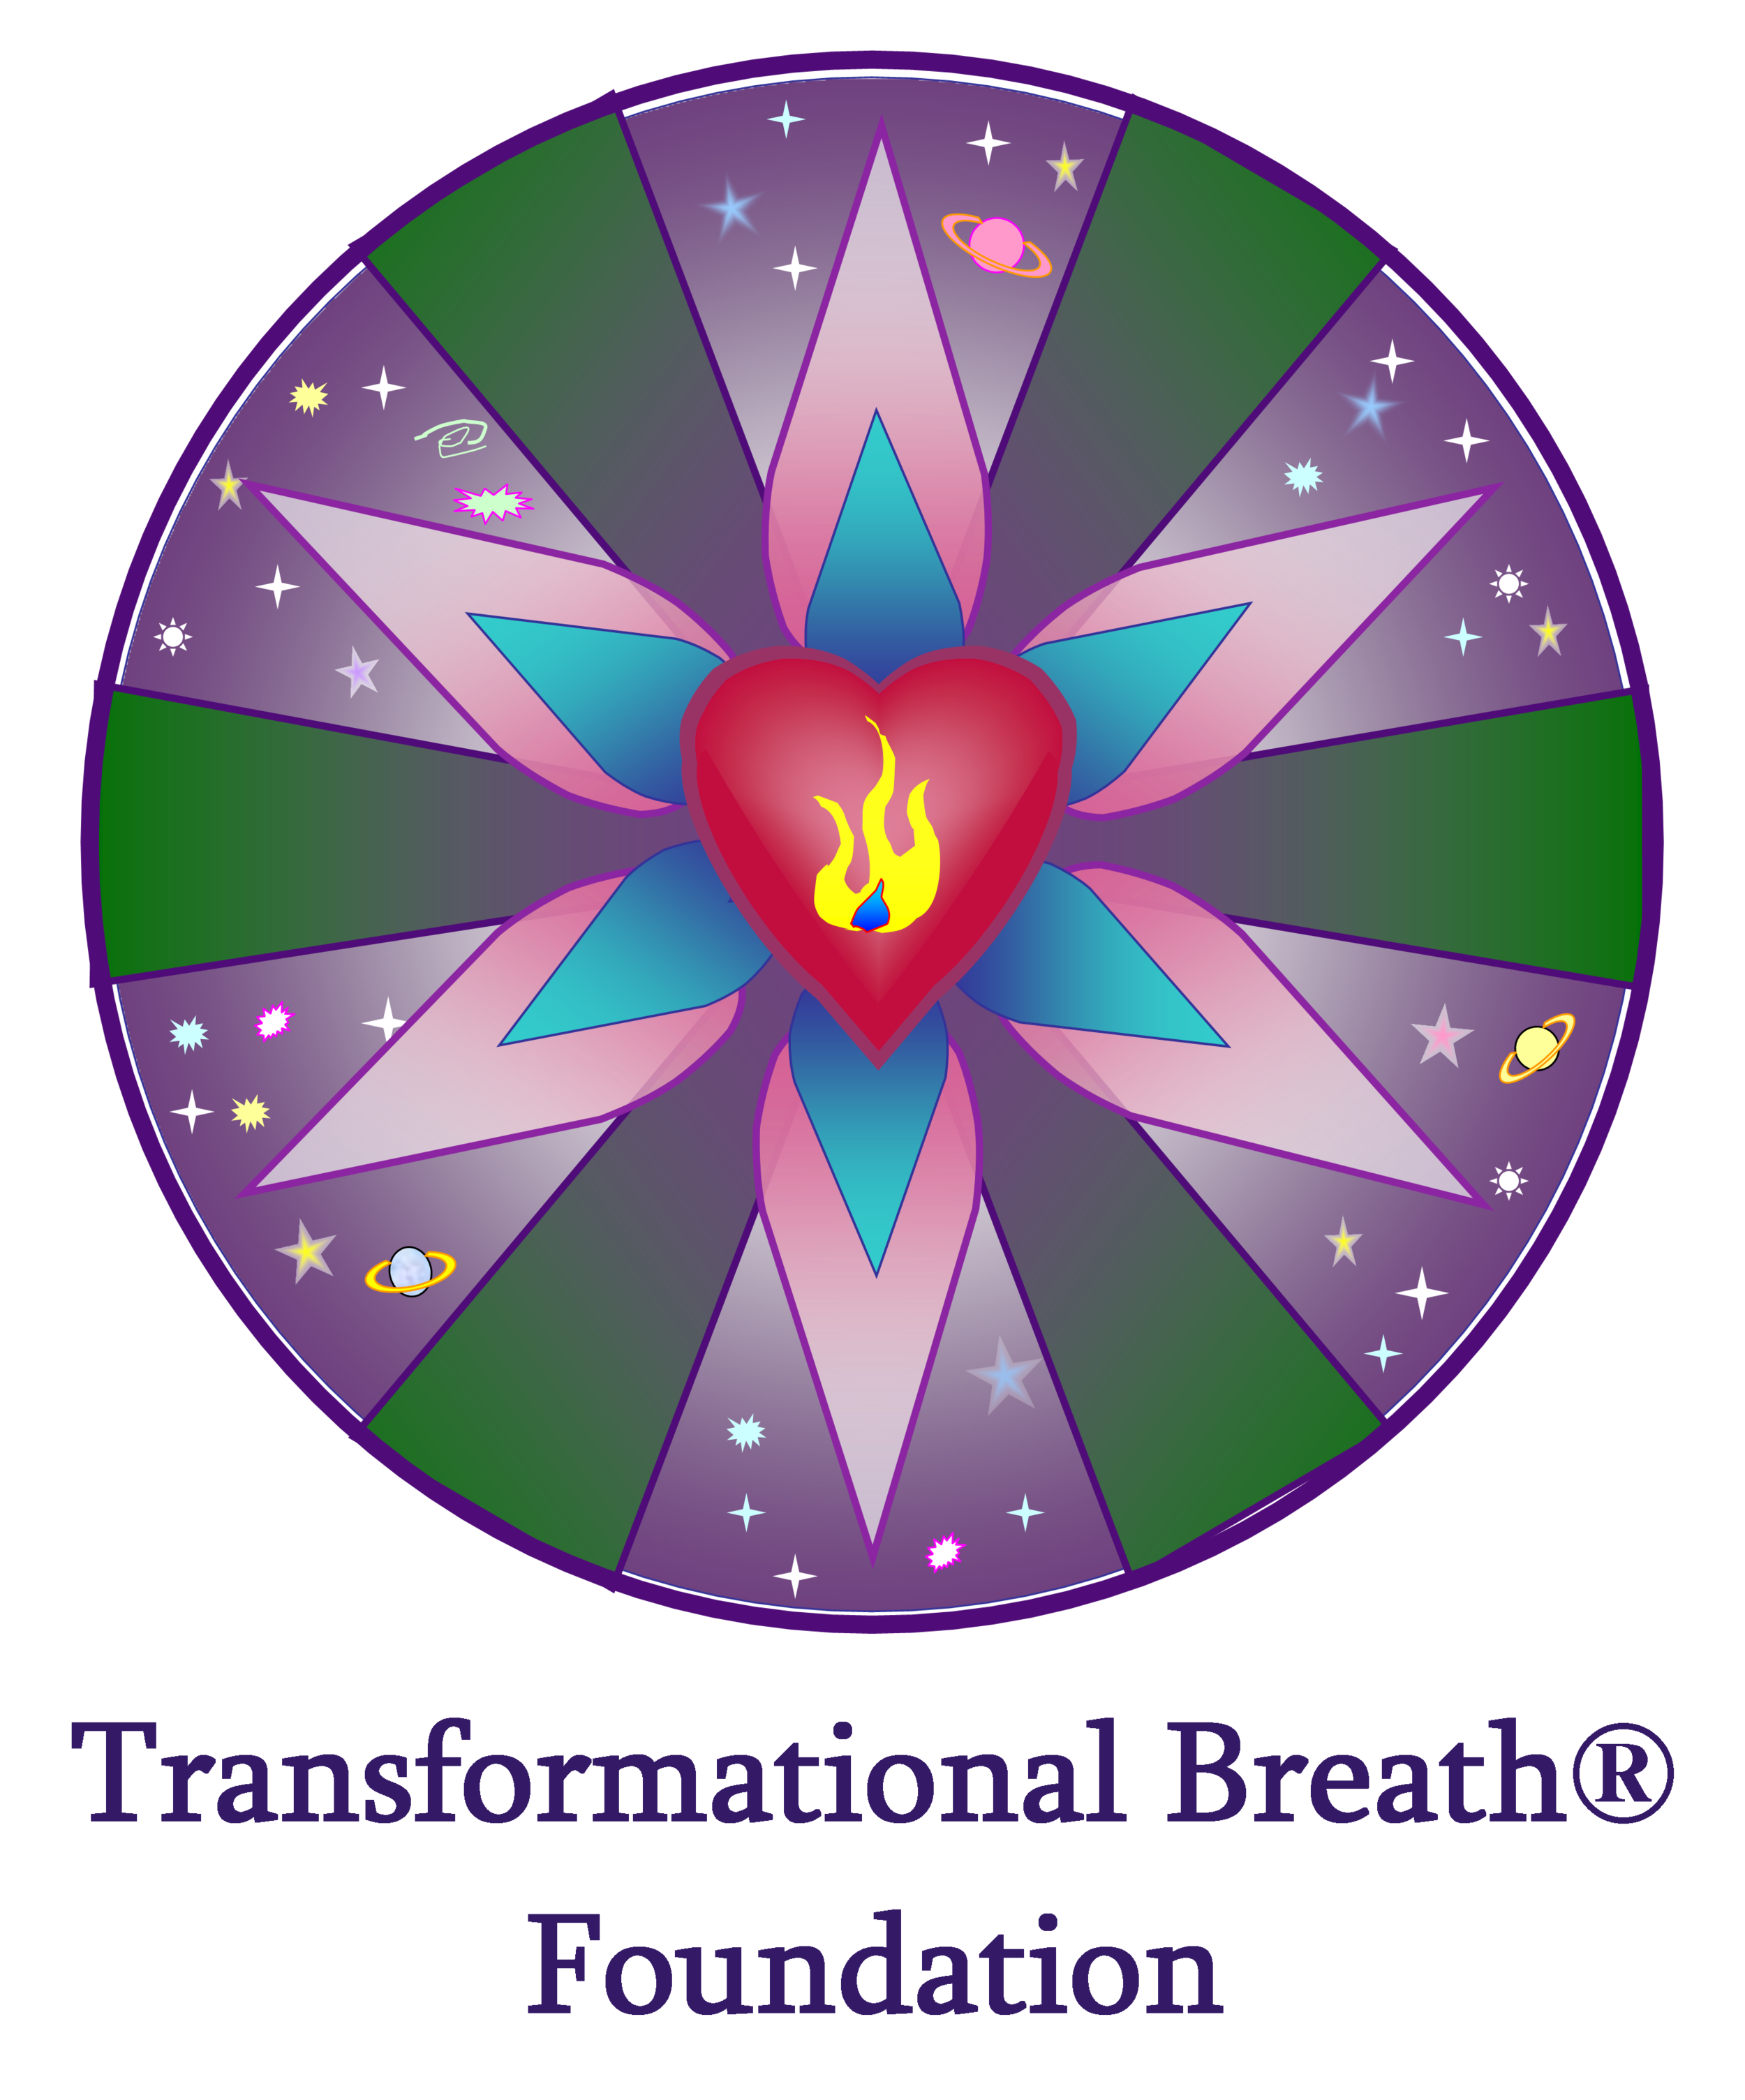 breath-logo-words-trans-large.png